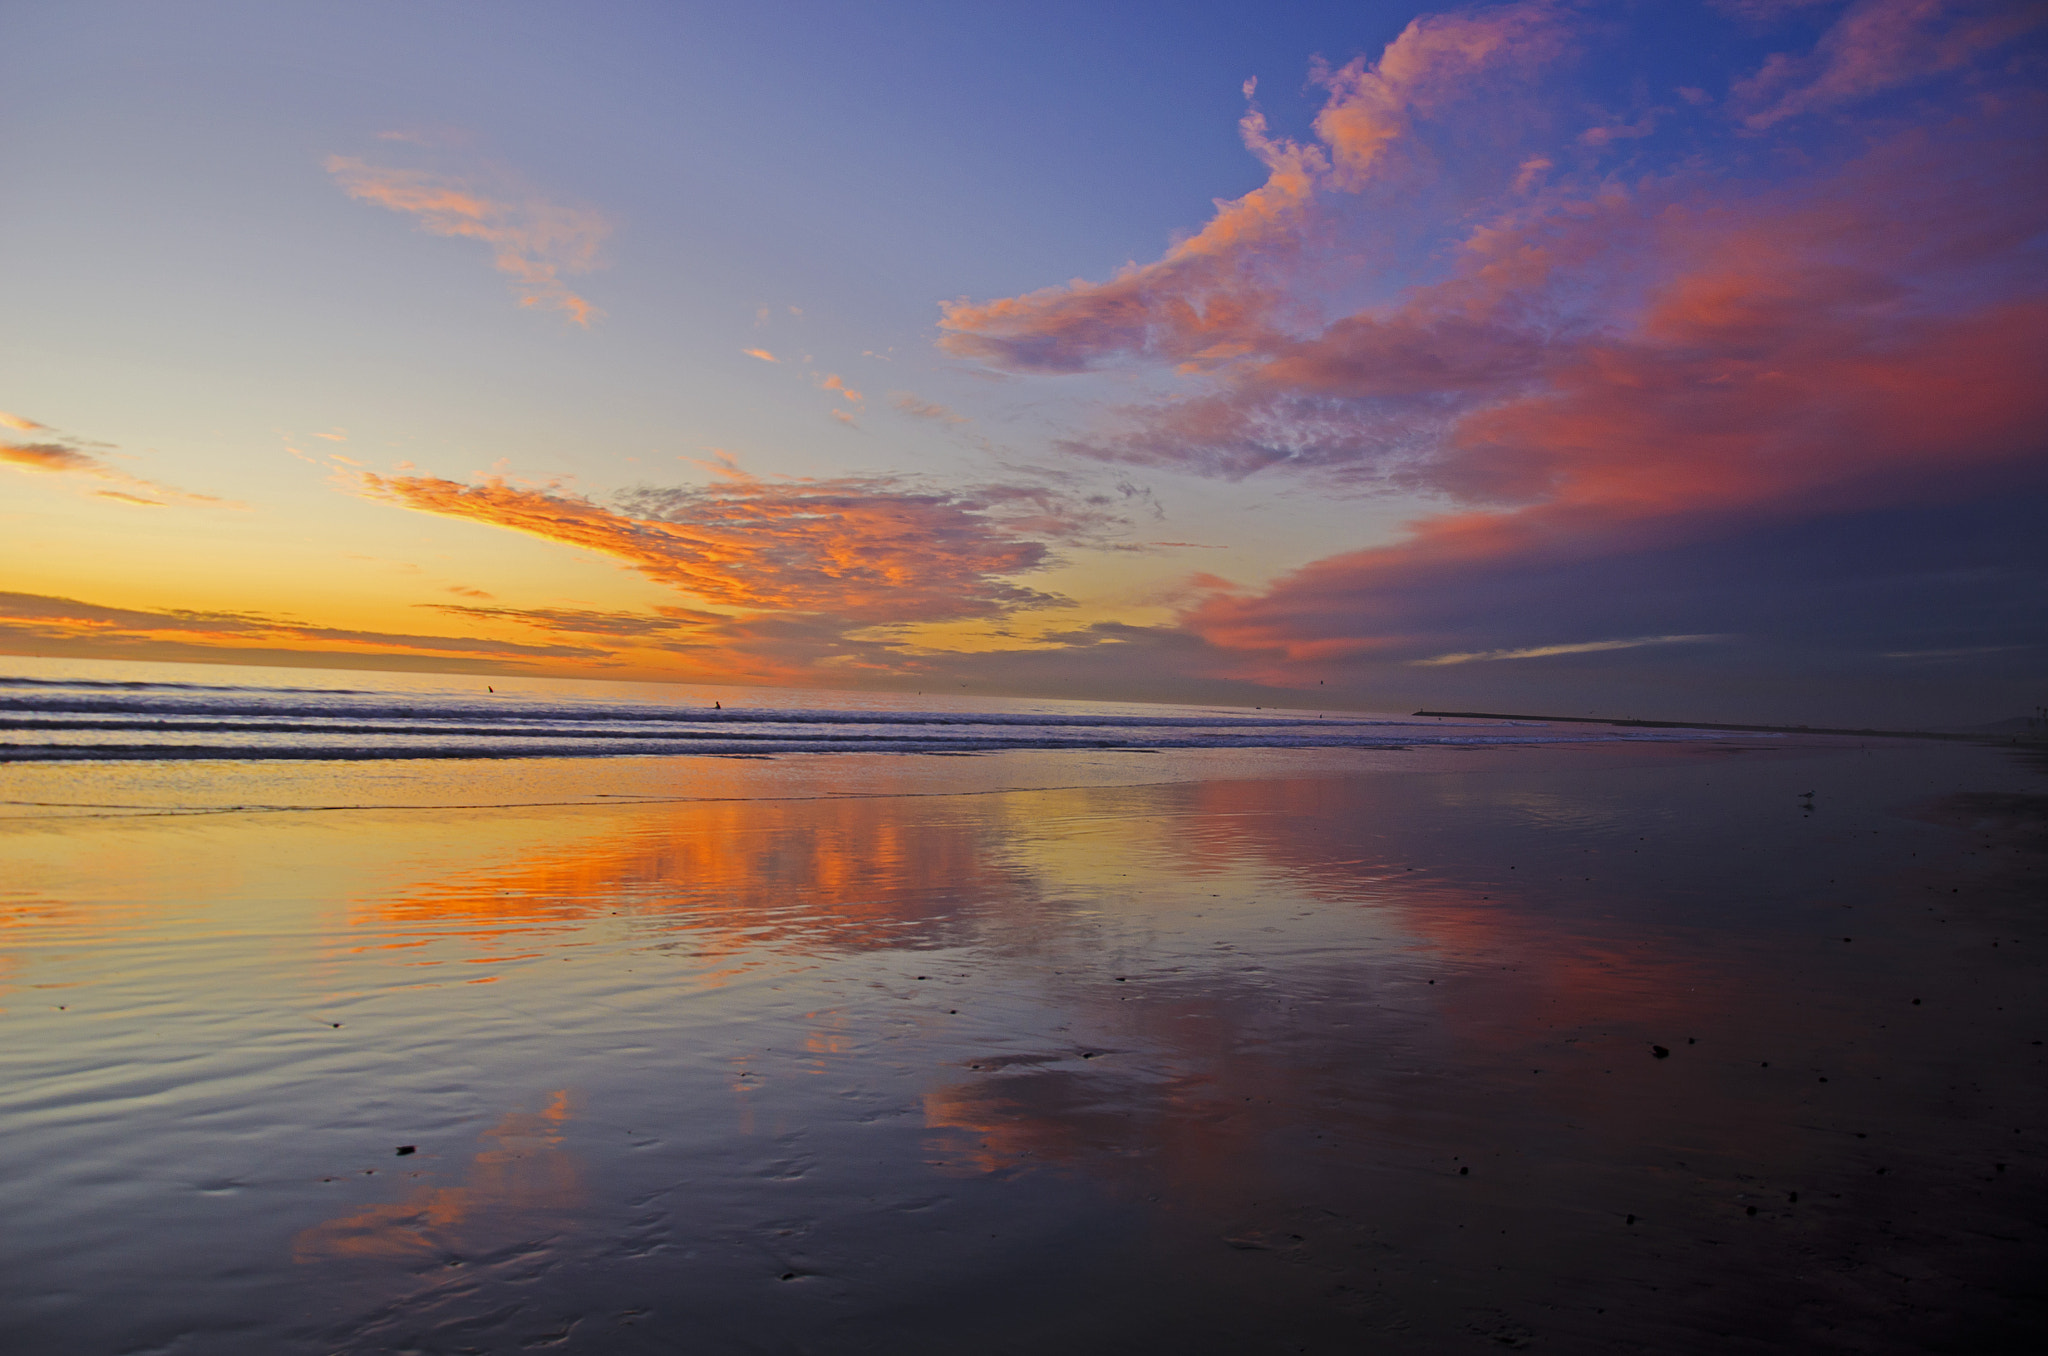 Photograph Reflections at low tide in Oceanside.  by Rich Cruse on 500px